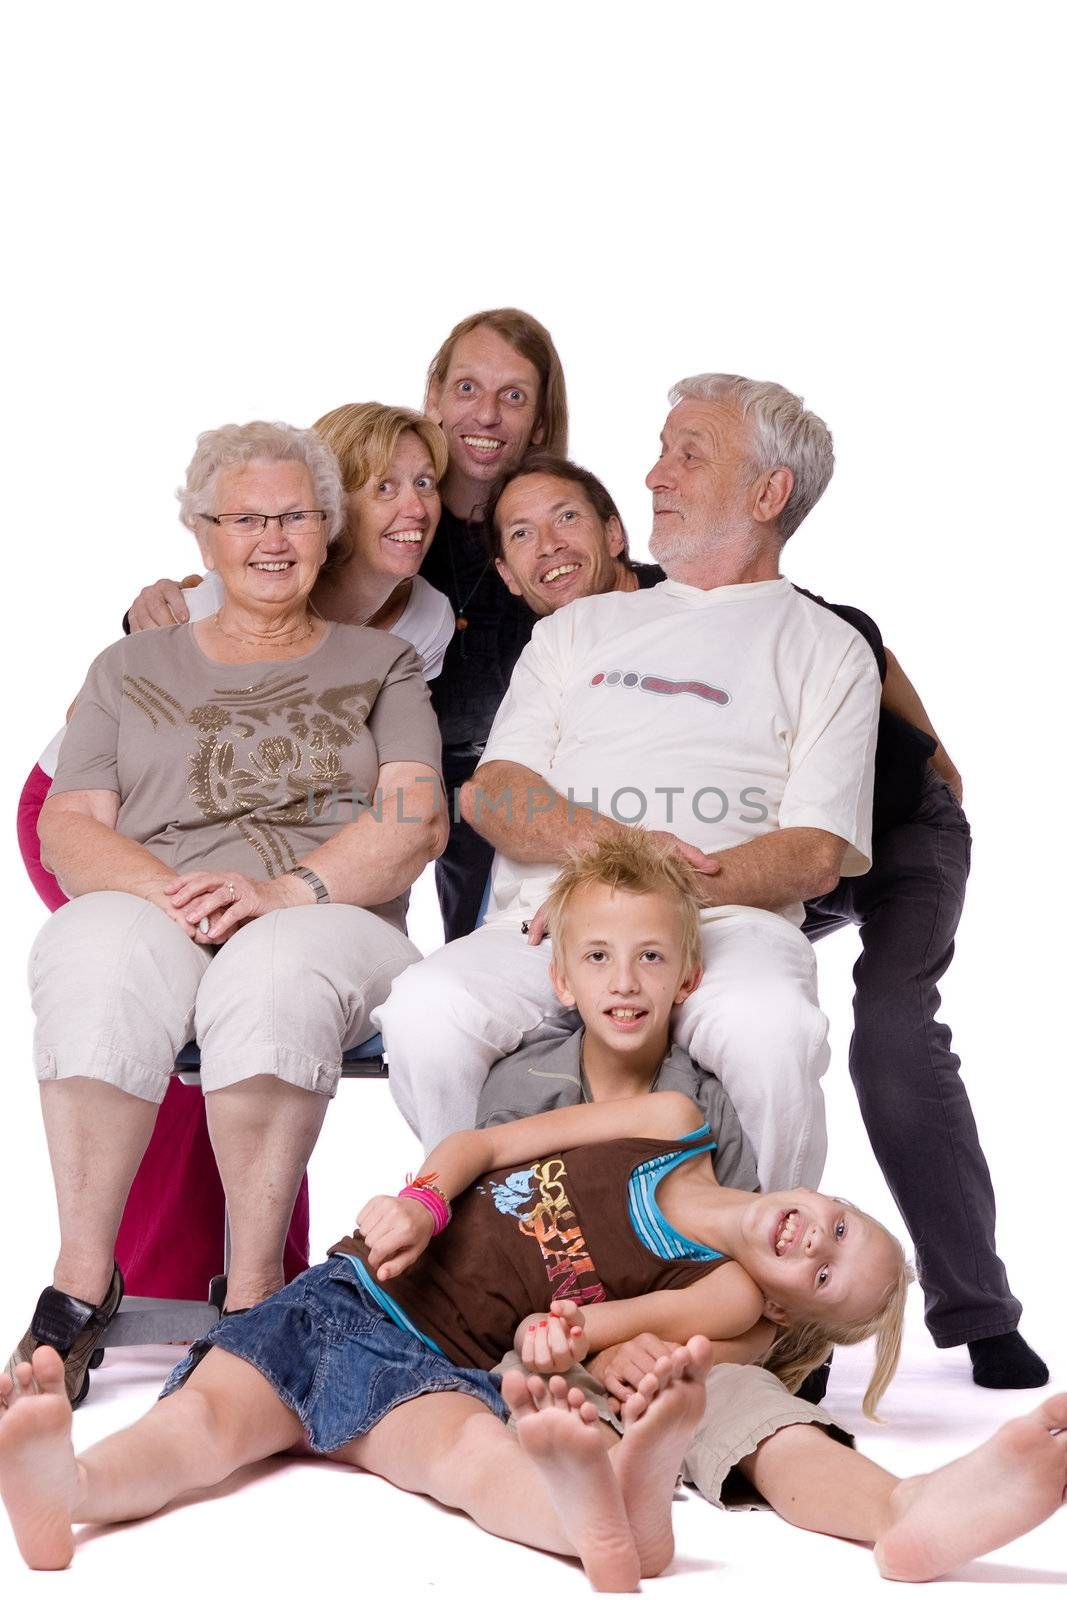 Studio family portrait where the whole family is acting crazy